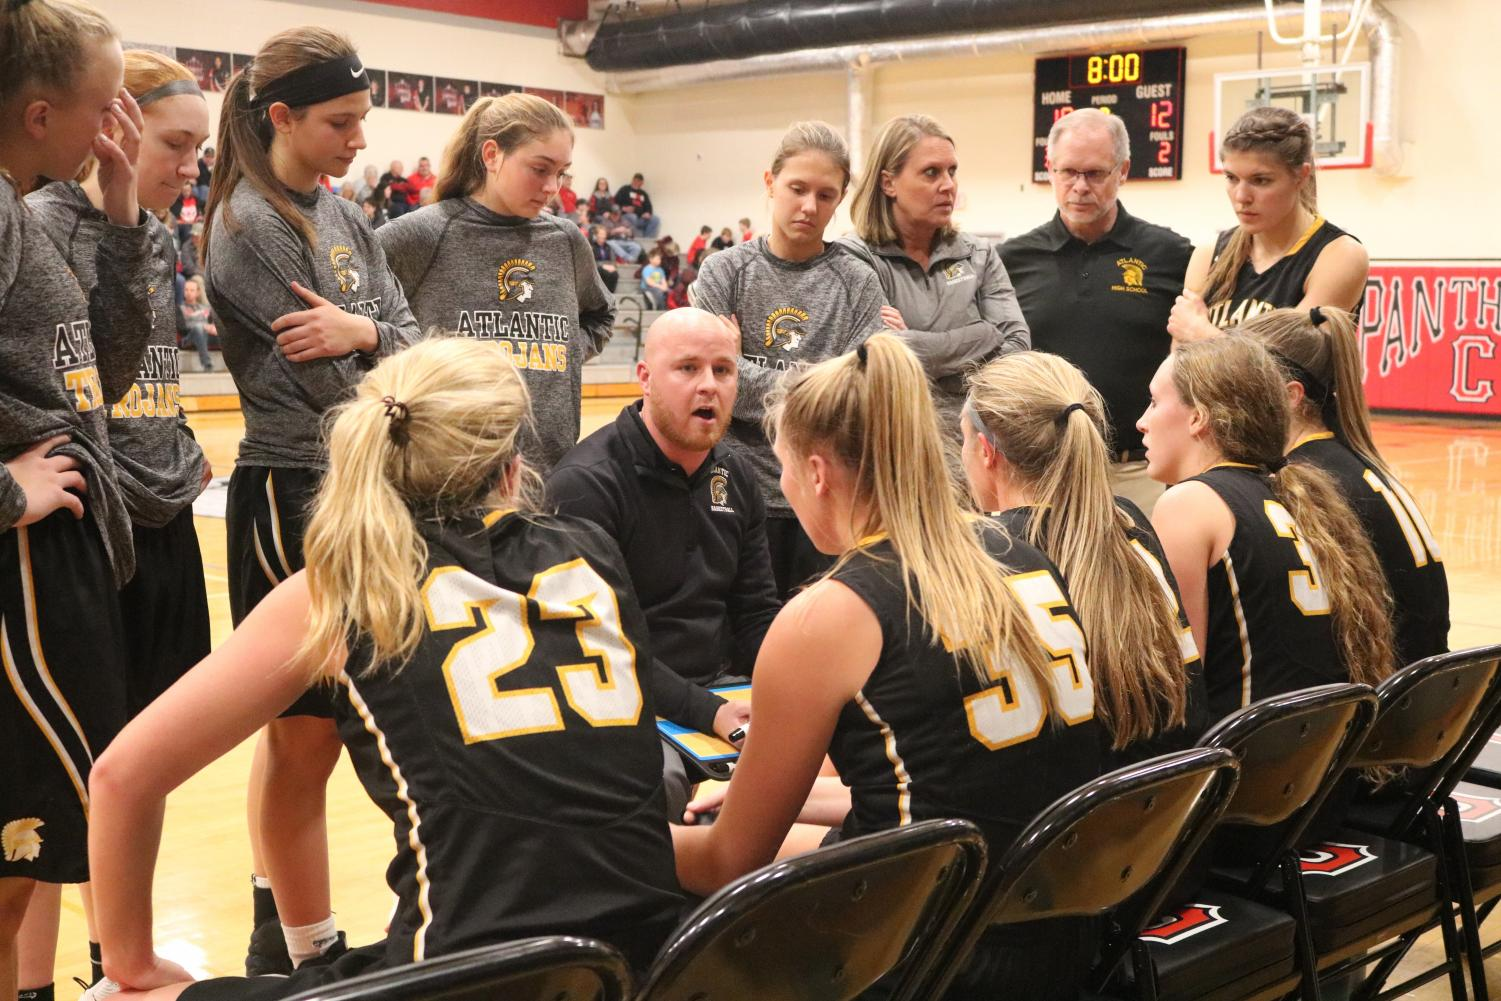 The varsity girls listen intently to Coach Vargason during a timeout. Sophomore Alyssa Derby led the Trojan pack with 13 points.